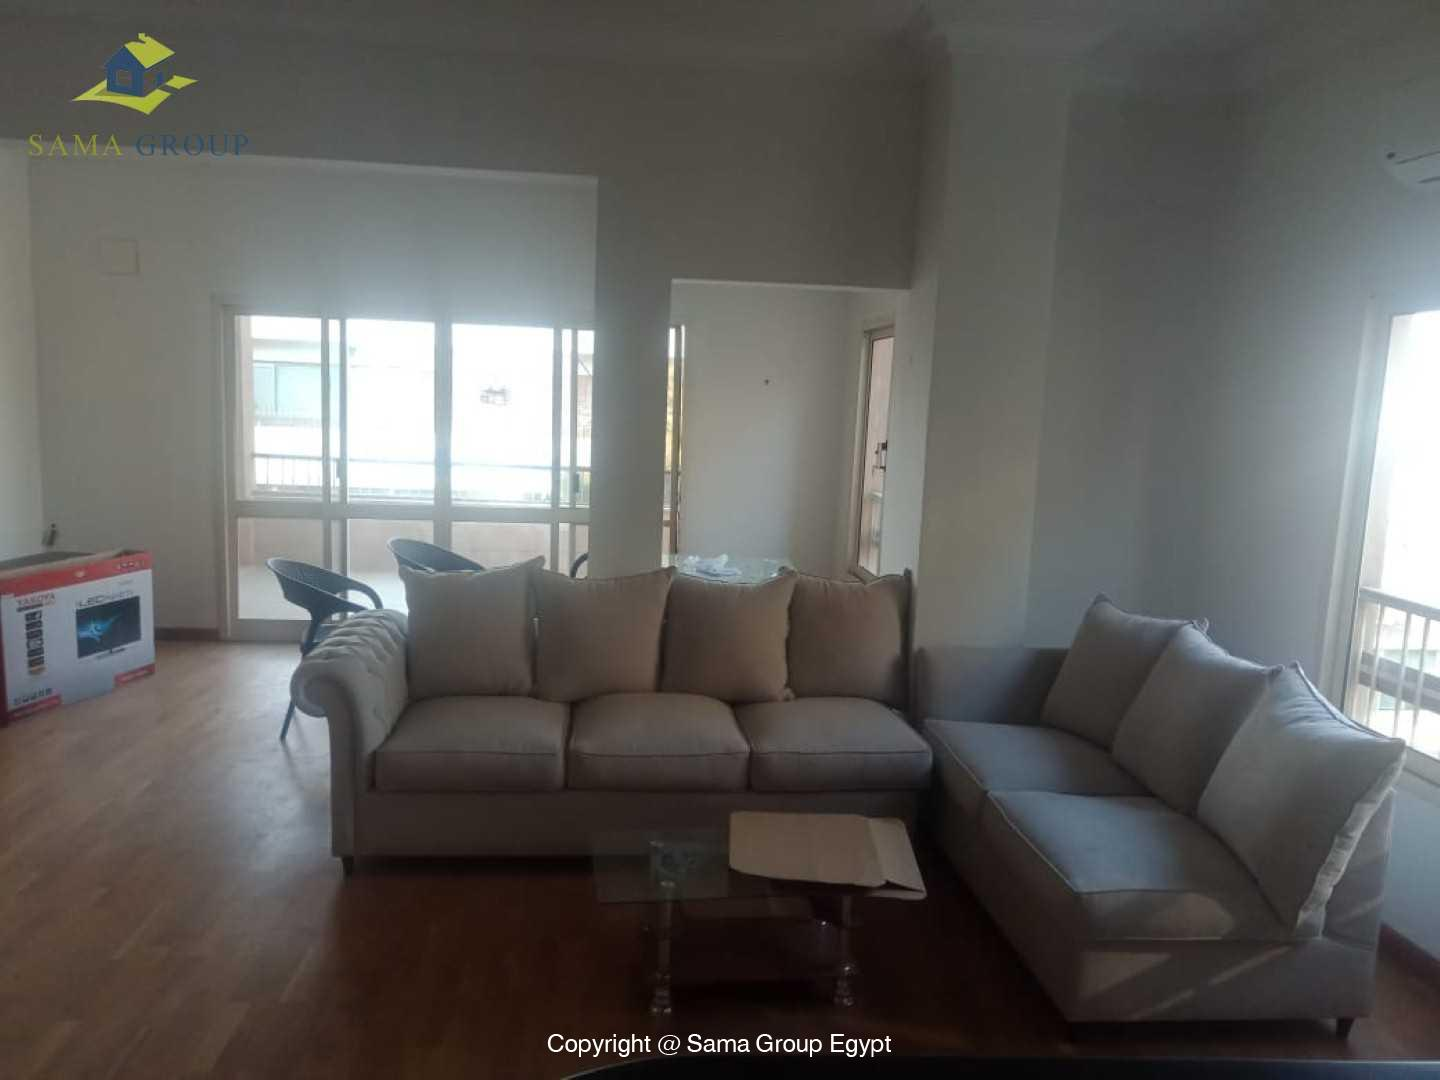 Modern Furnished Apartment For Rent In Maadi Degla,Modern Furnished,Apartment NO #14